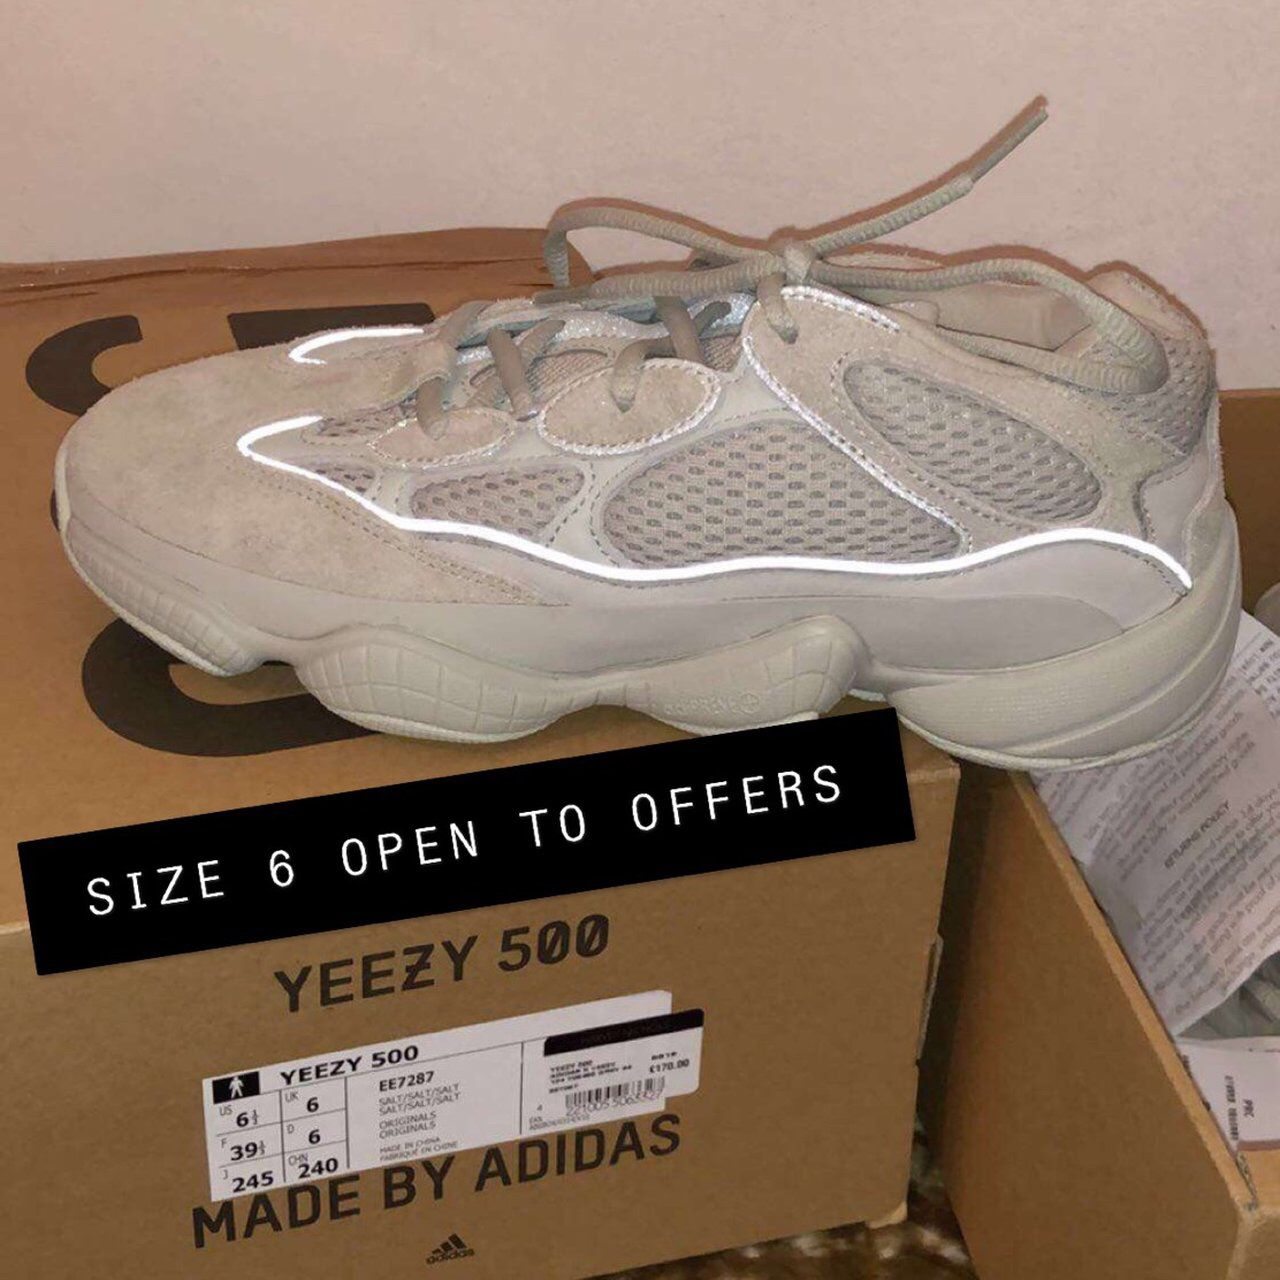 7cc670132f6ad Yeezy 500 · Look what I just found on Depop ✋ https   depop.app.